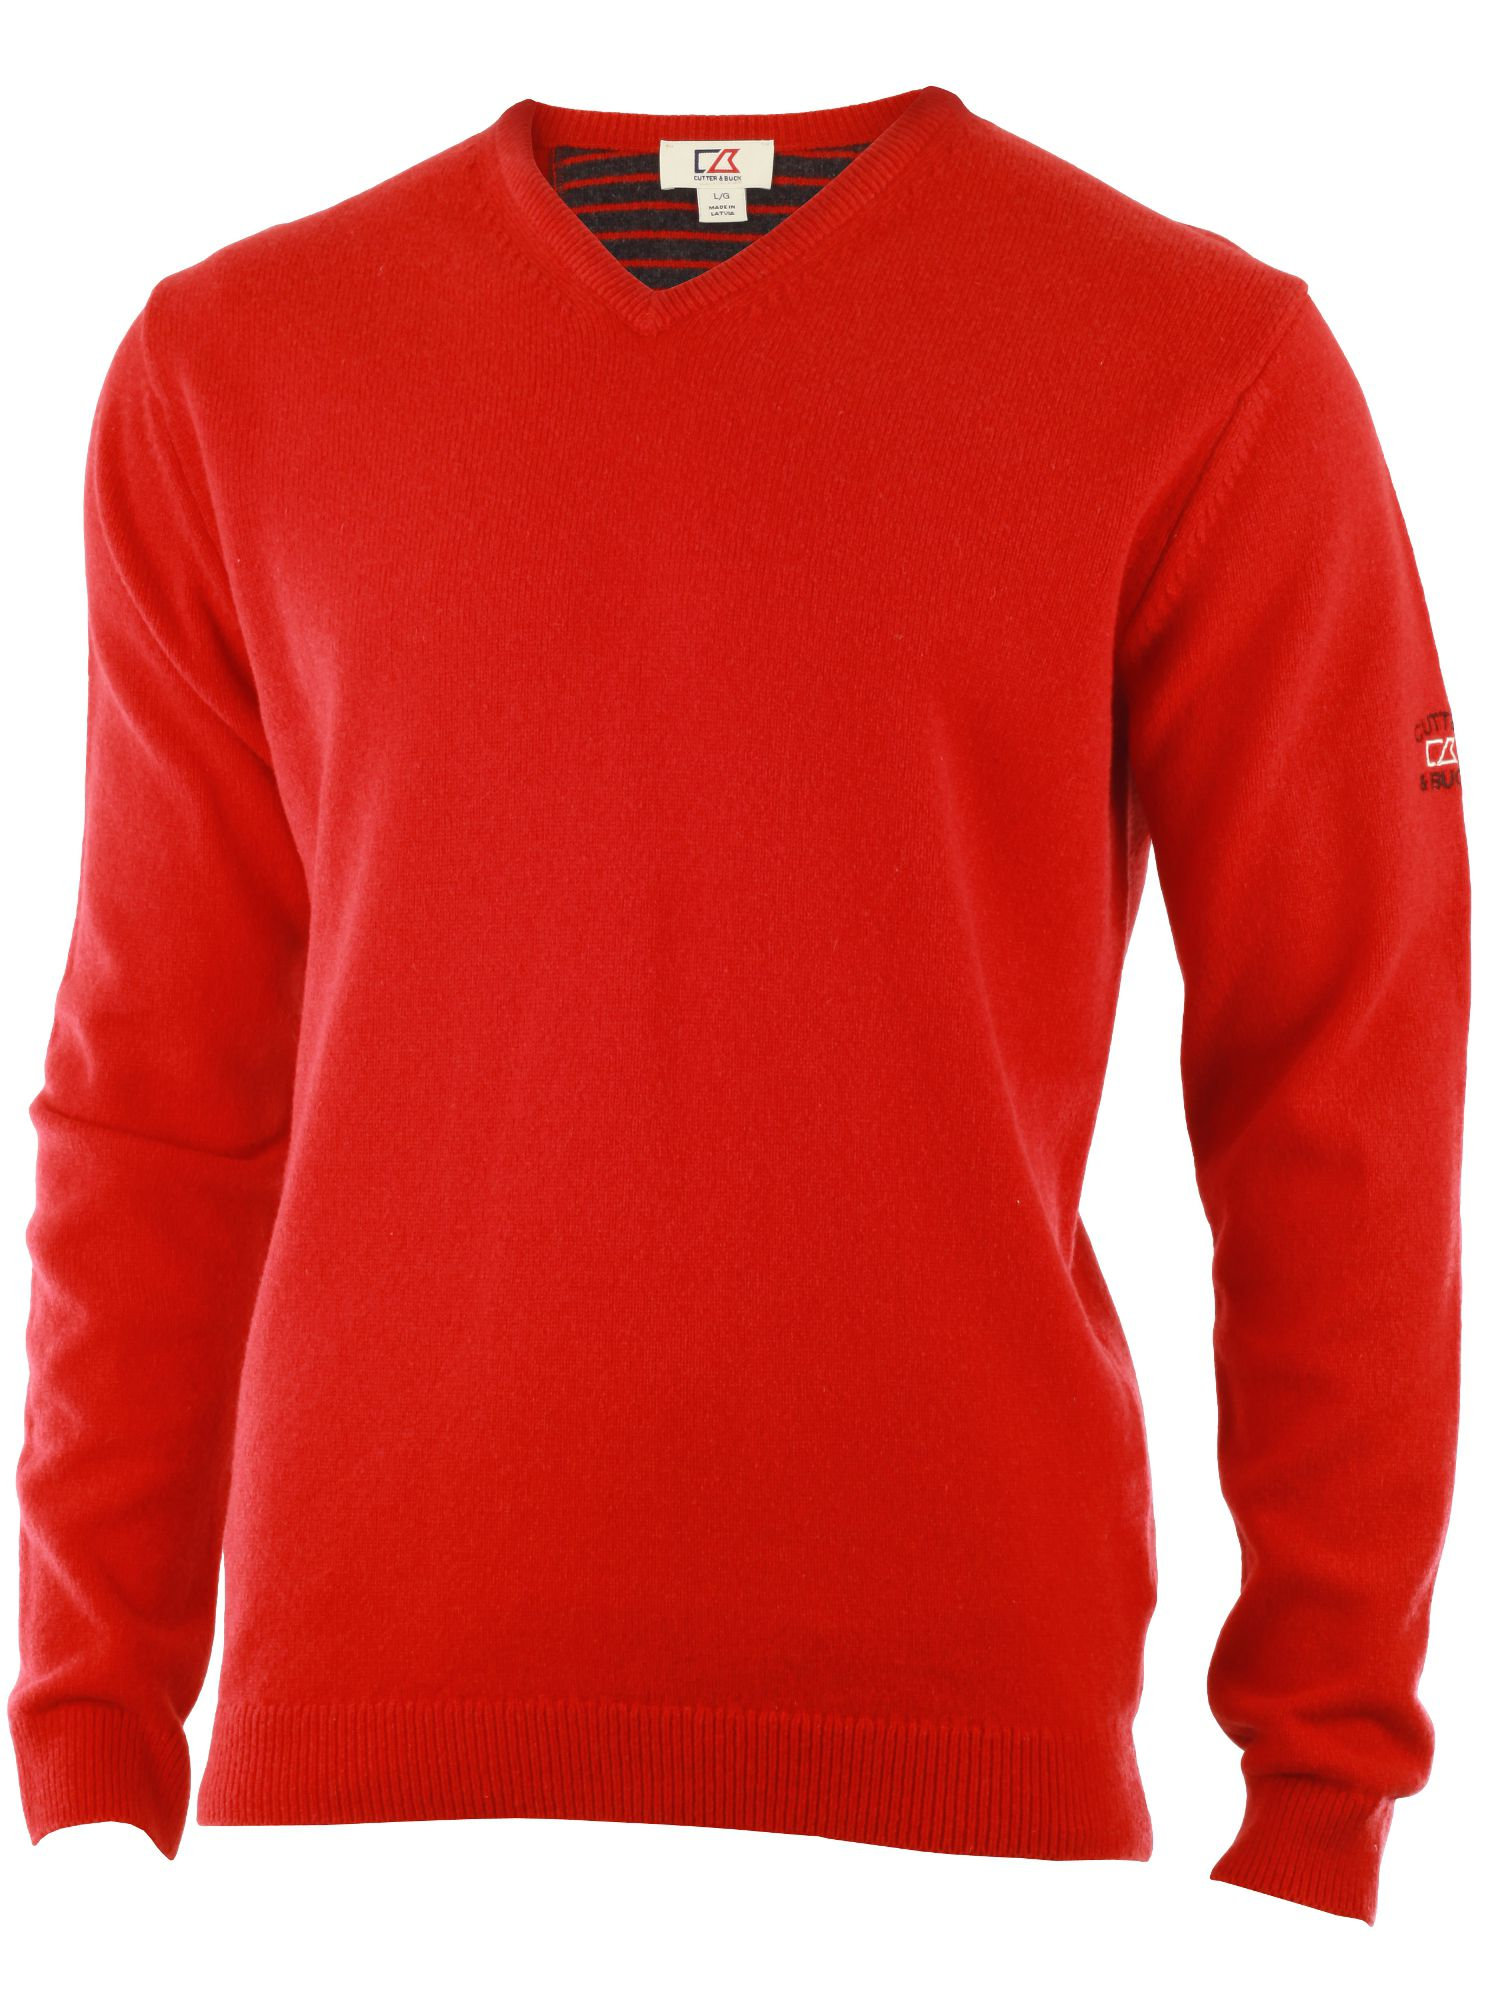 Men's Cutter and Buck Lambswool v neck sweater, Red